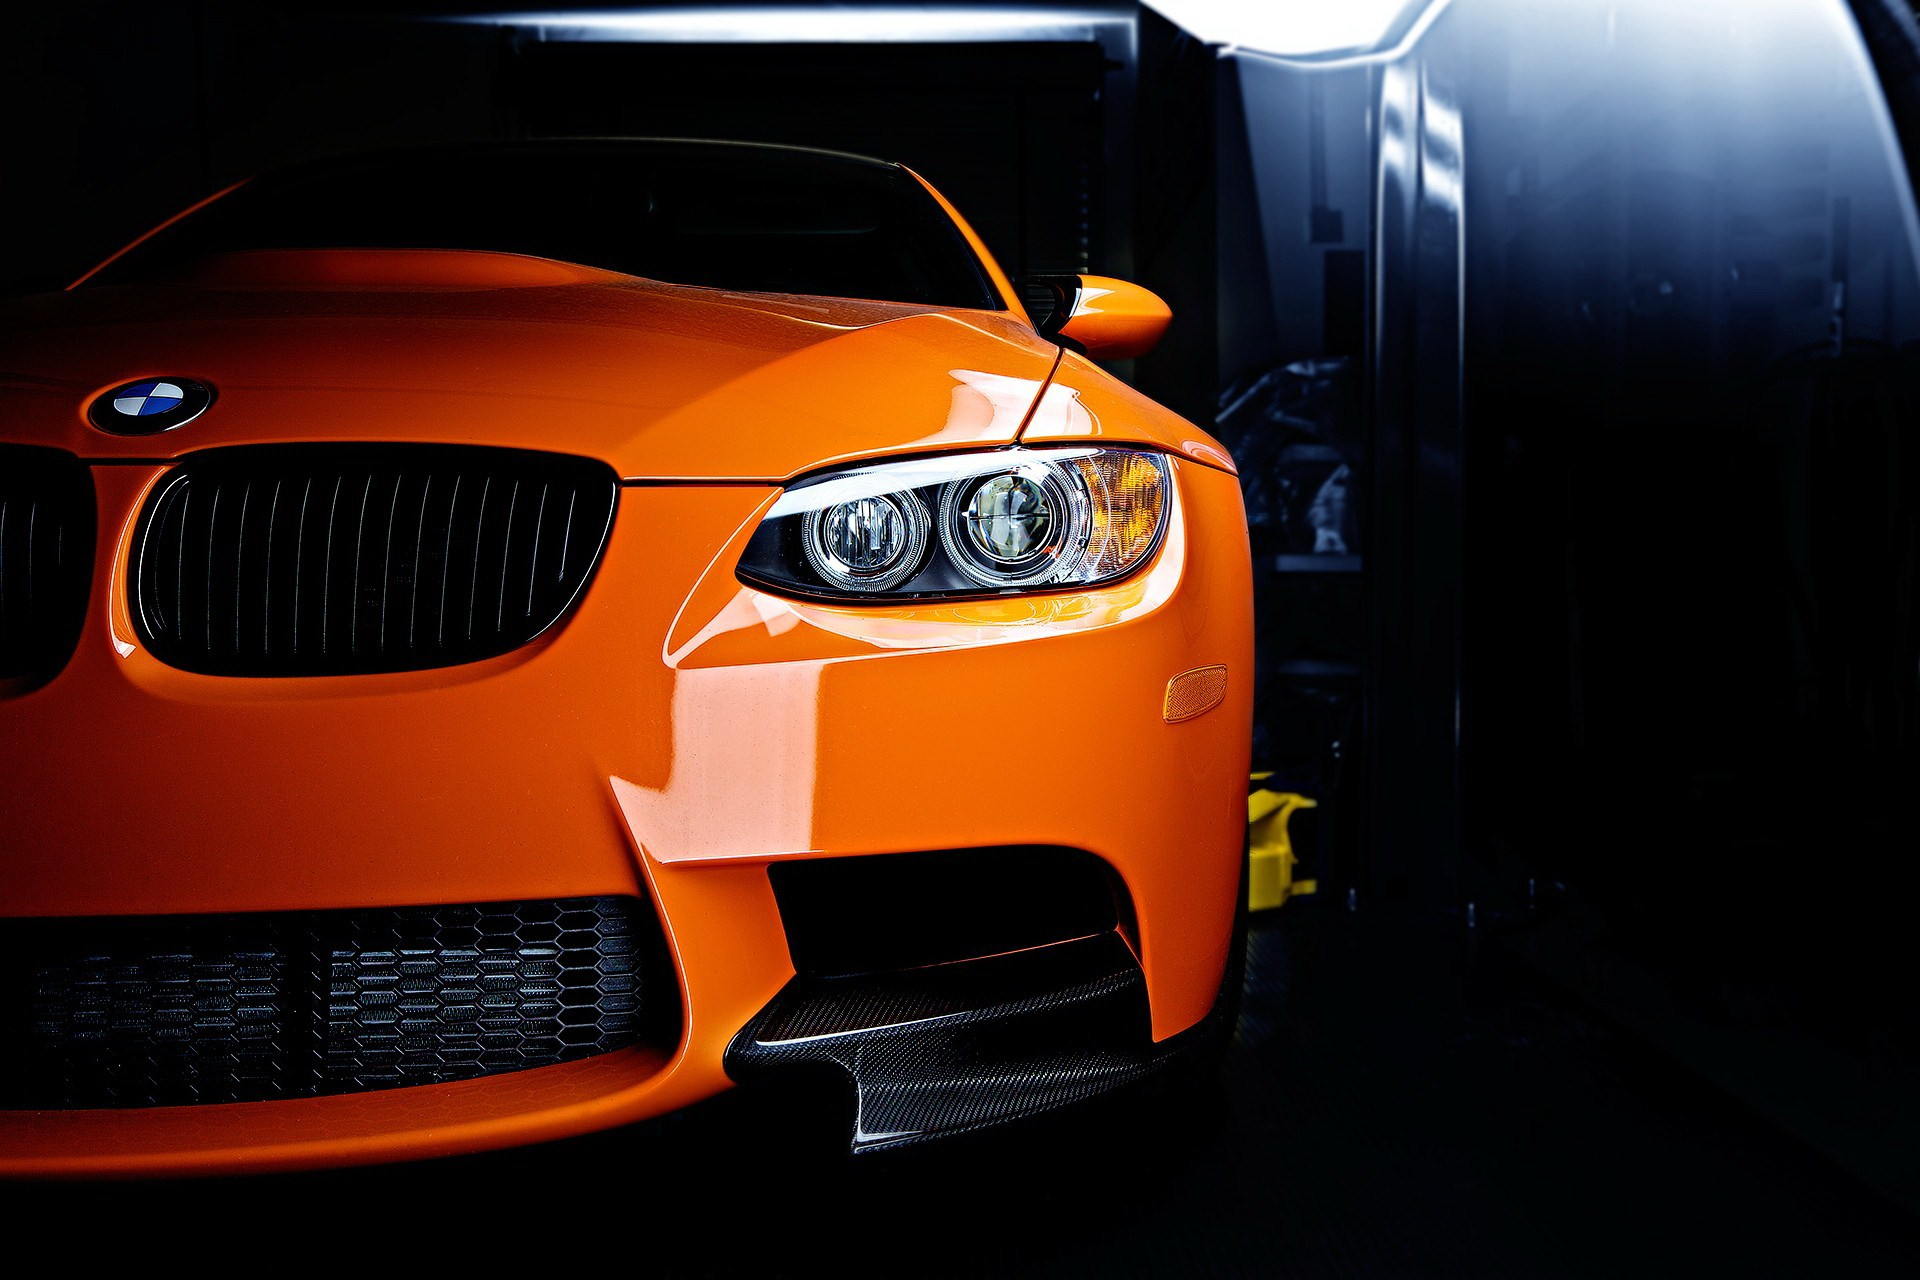 Download Car Front Wallpaper Hd 43816 1920x1280 Px High Definition